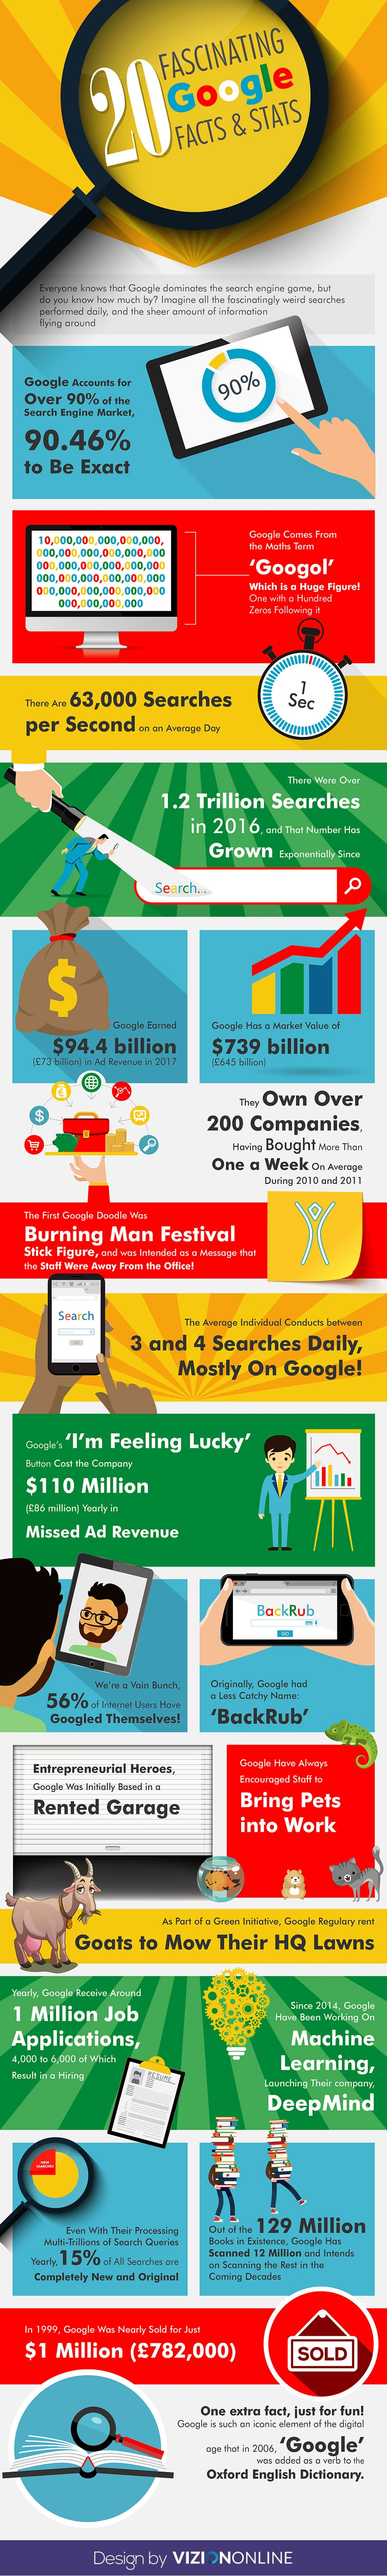 From Noun to Verb: 20 Fantabulous Google Facts - Infographic